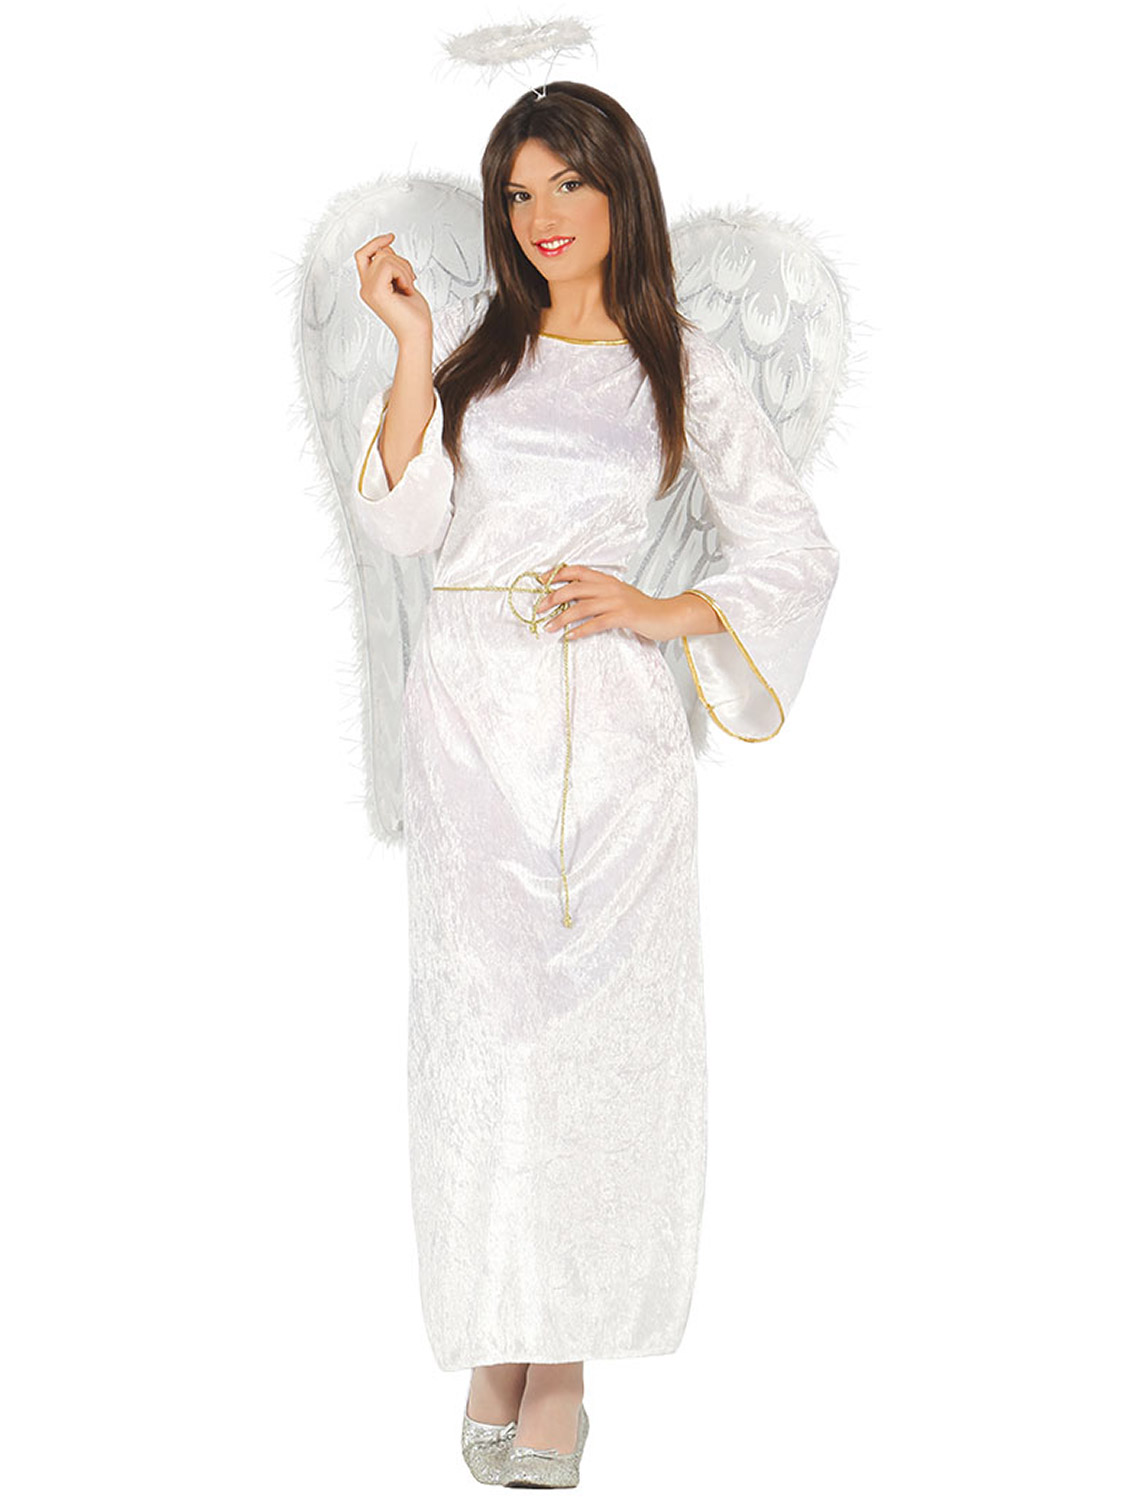 Ladies angel costume adults christmas nativity fancy dress womens transform yourself into a beautiful angel with this ladies elegant christmas costume ideal if are dressing up for christmas solutioingenieria Gallery